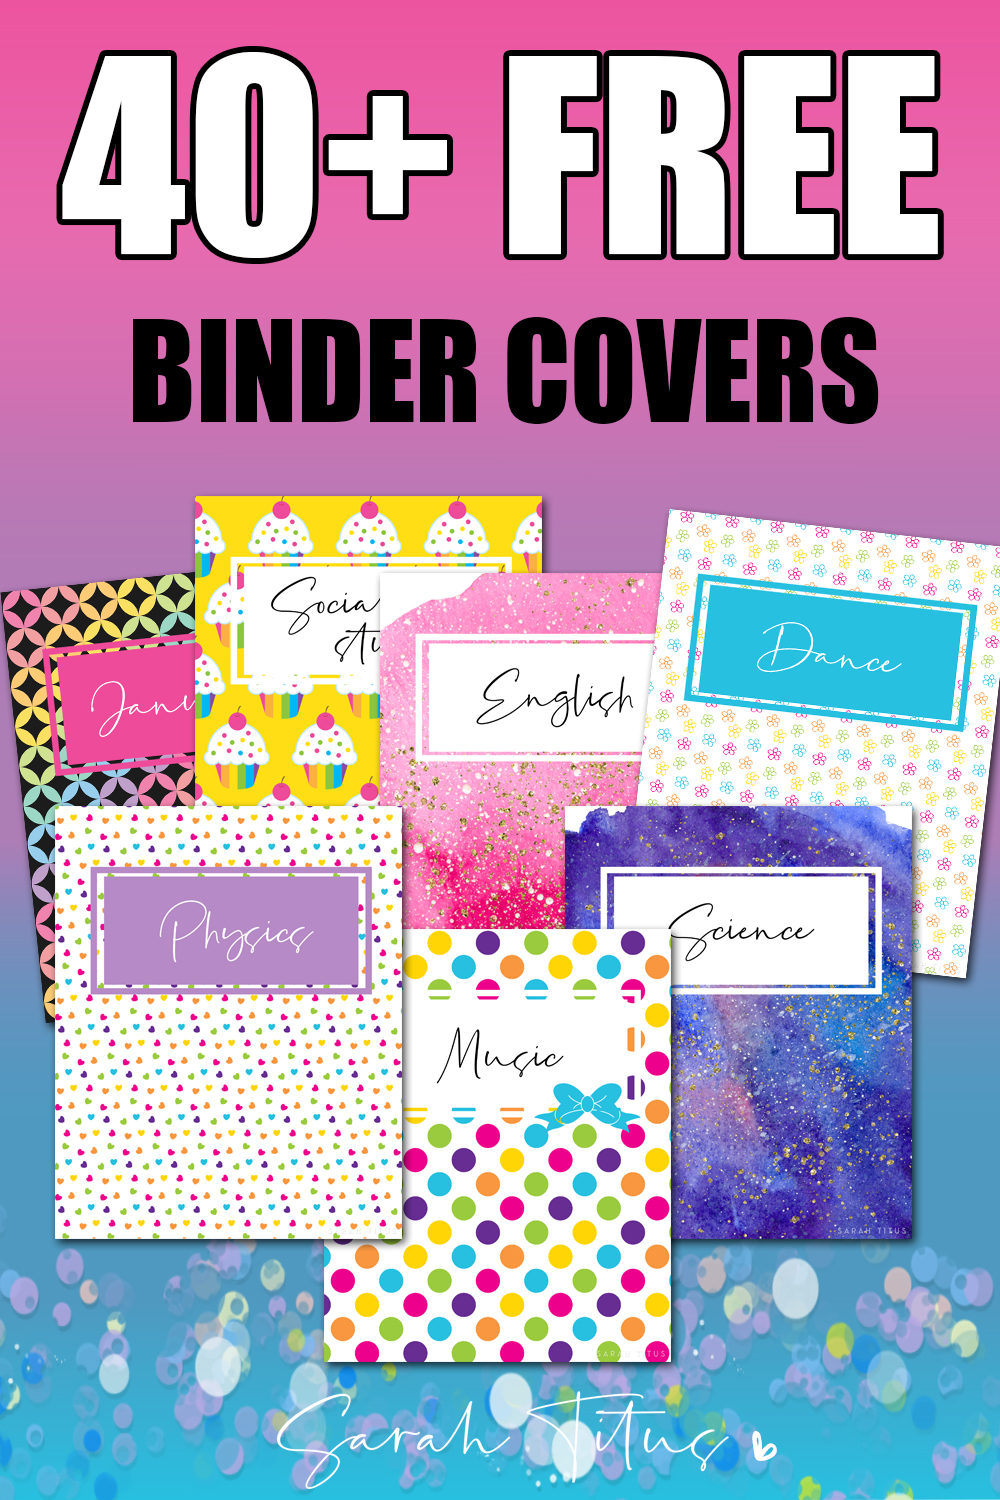 40 Binder Covers Free Printables Sarah Titus From Homeless To 8 Figures